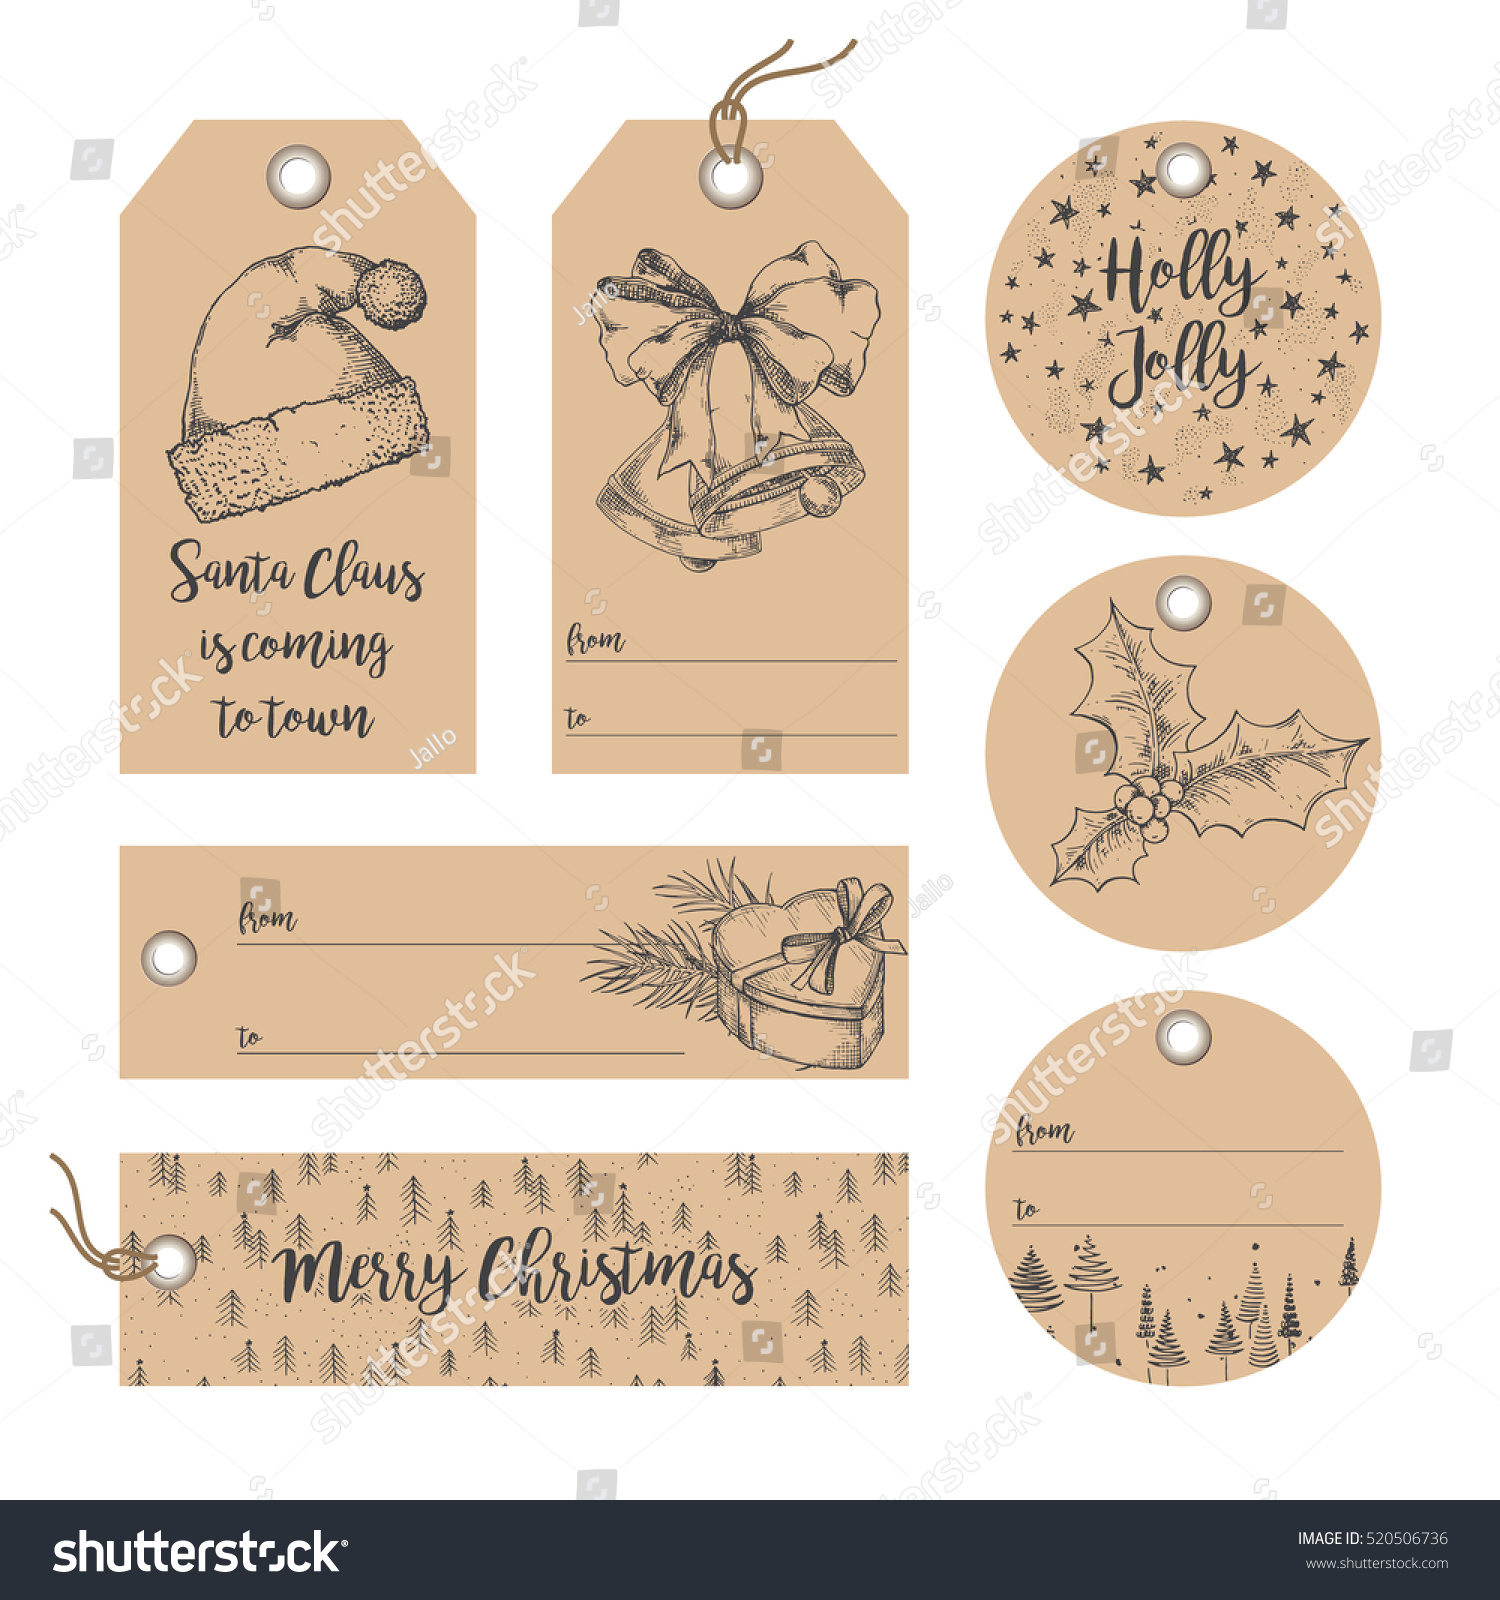 gift tag design template - Ideal.vistalist.co